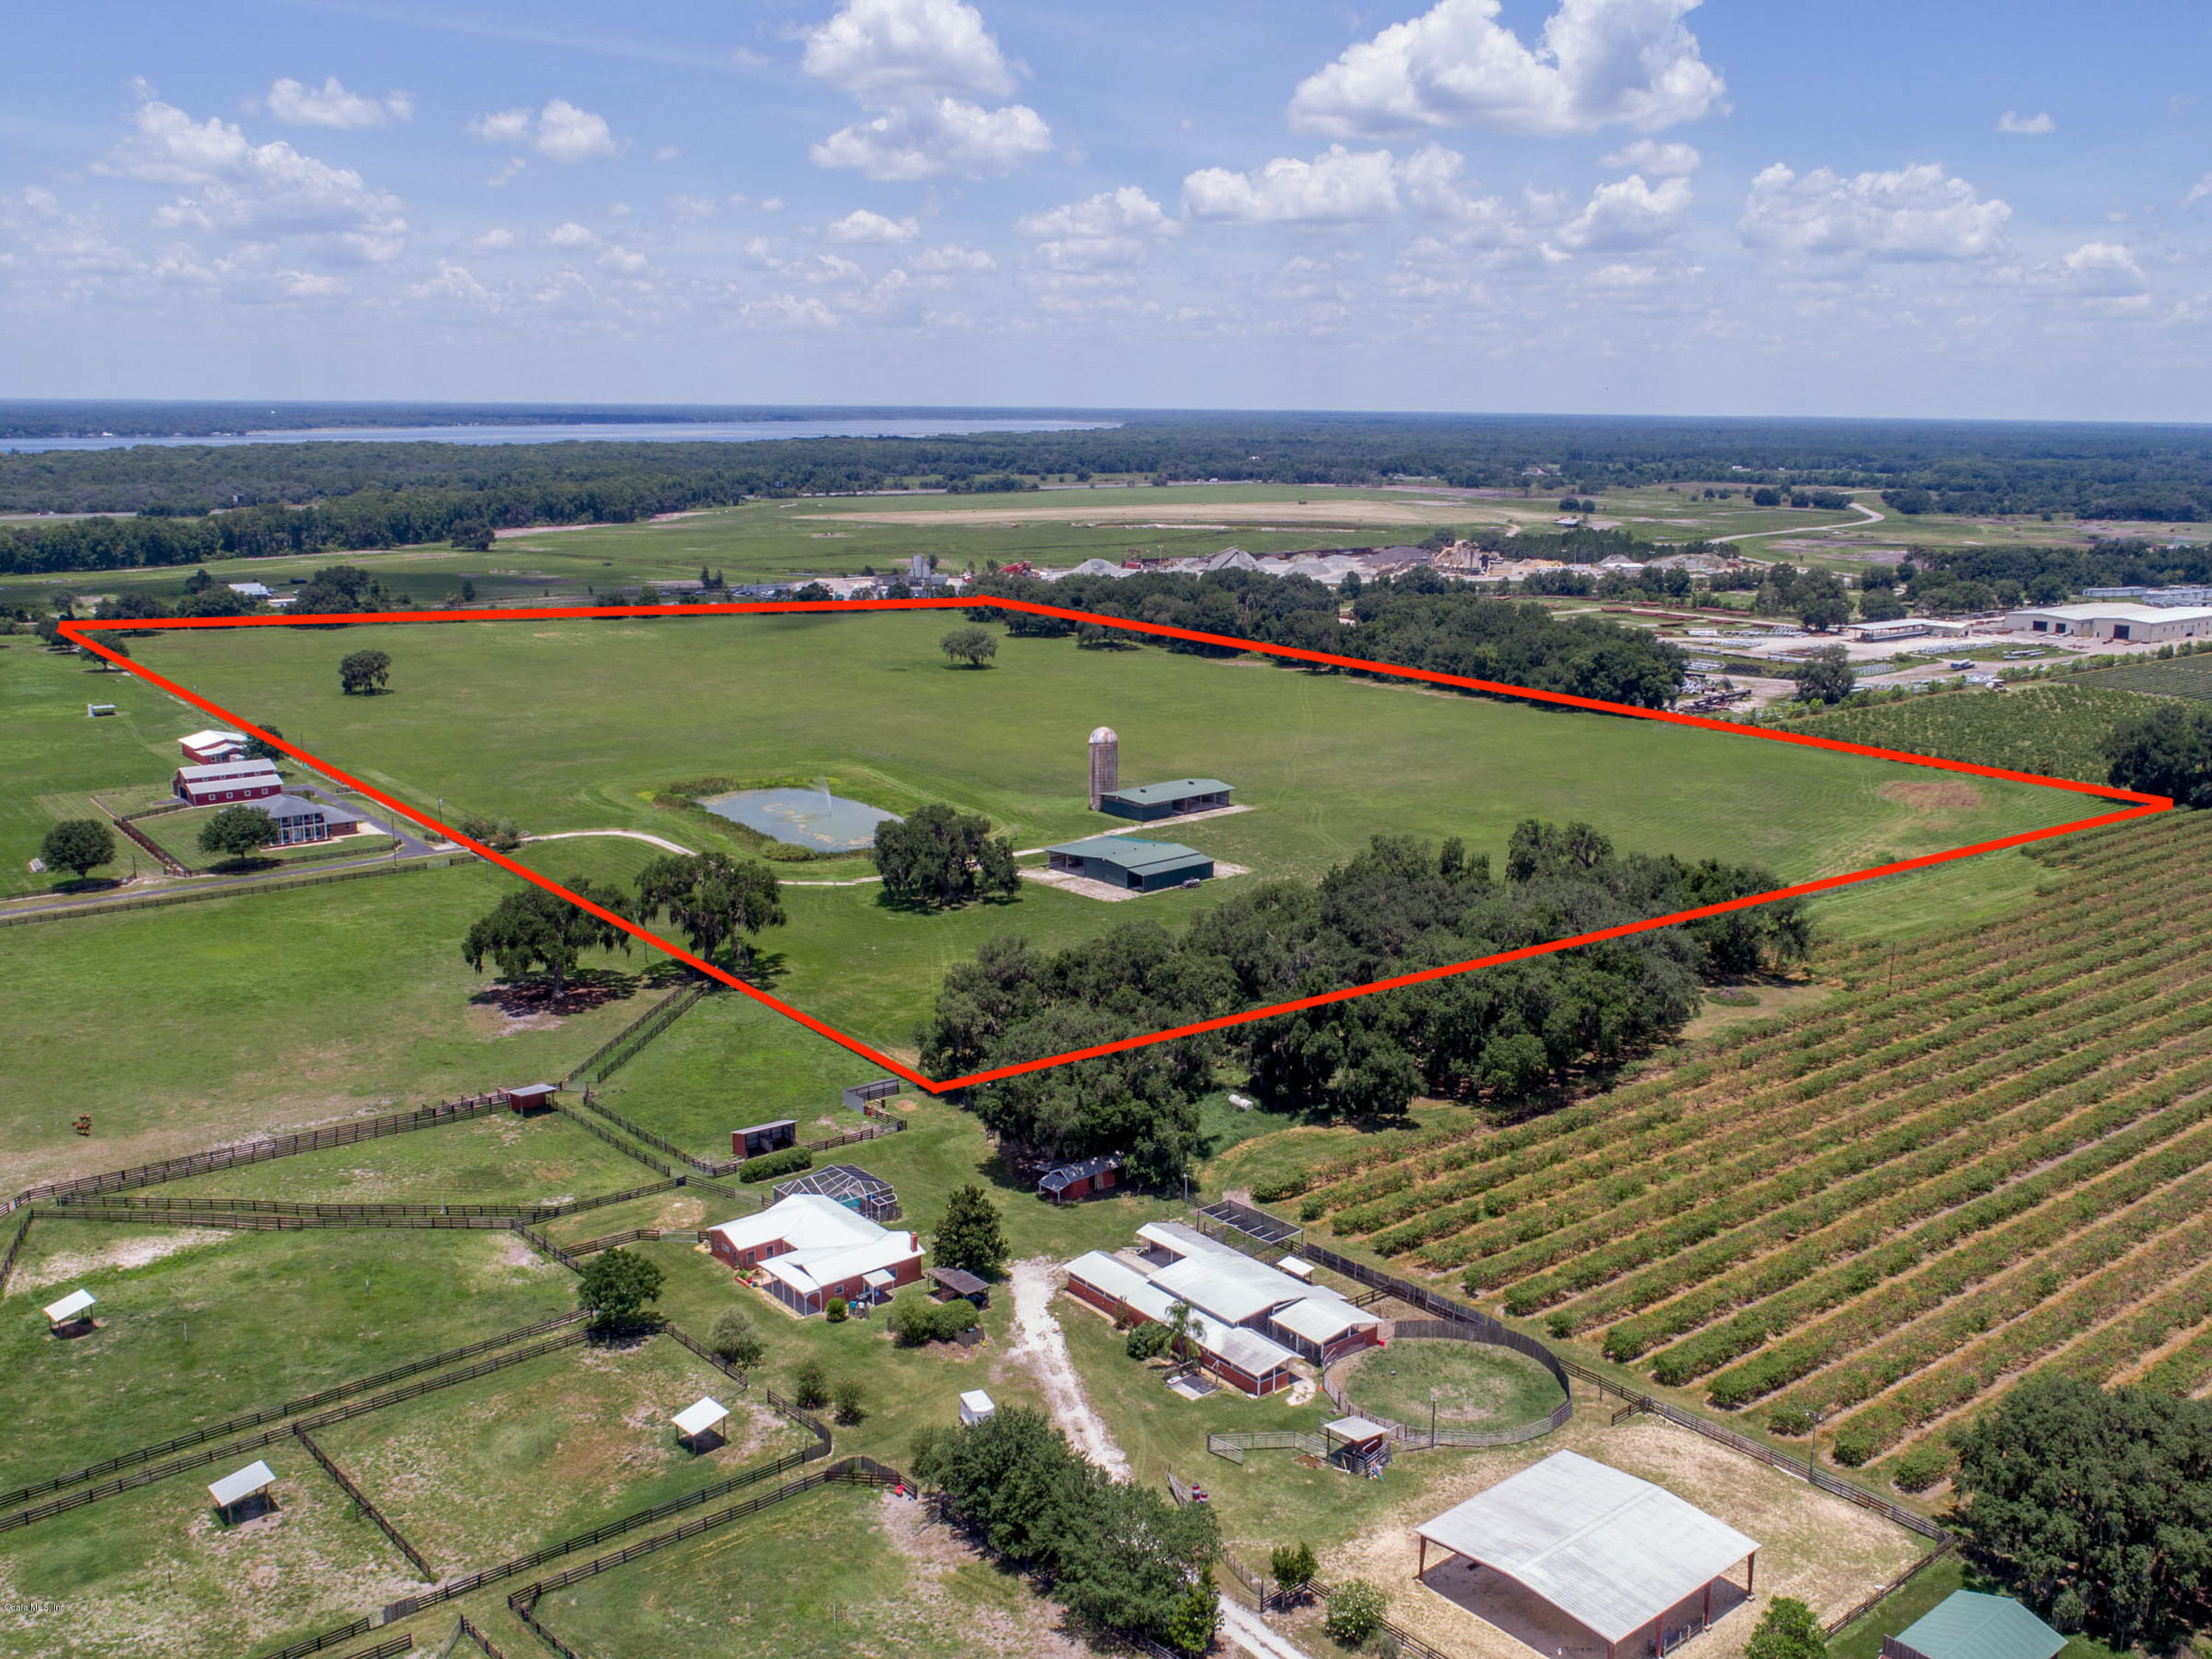 46 98 Acre Ocala, Florida Land For Sale – OHP6198 – Ocala